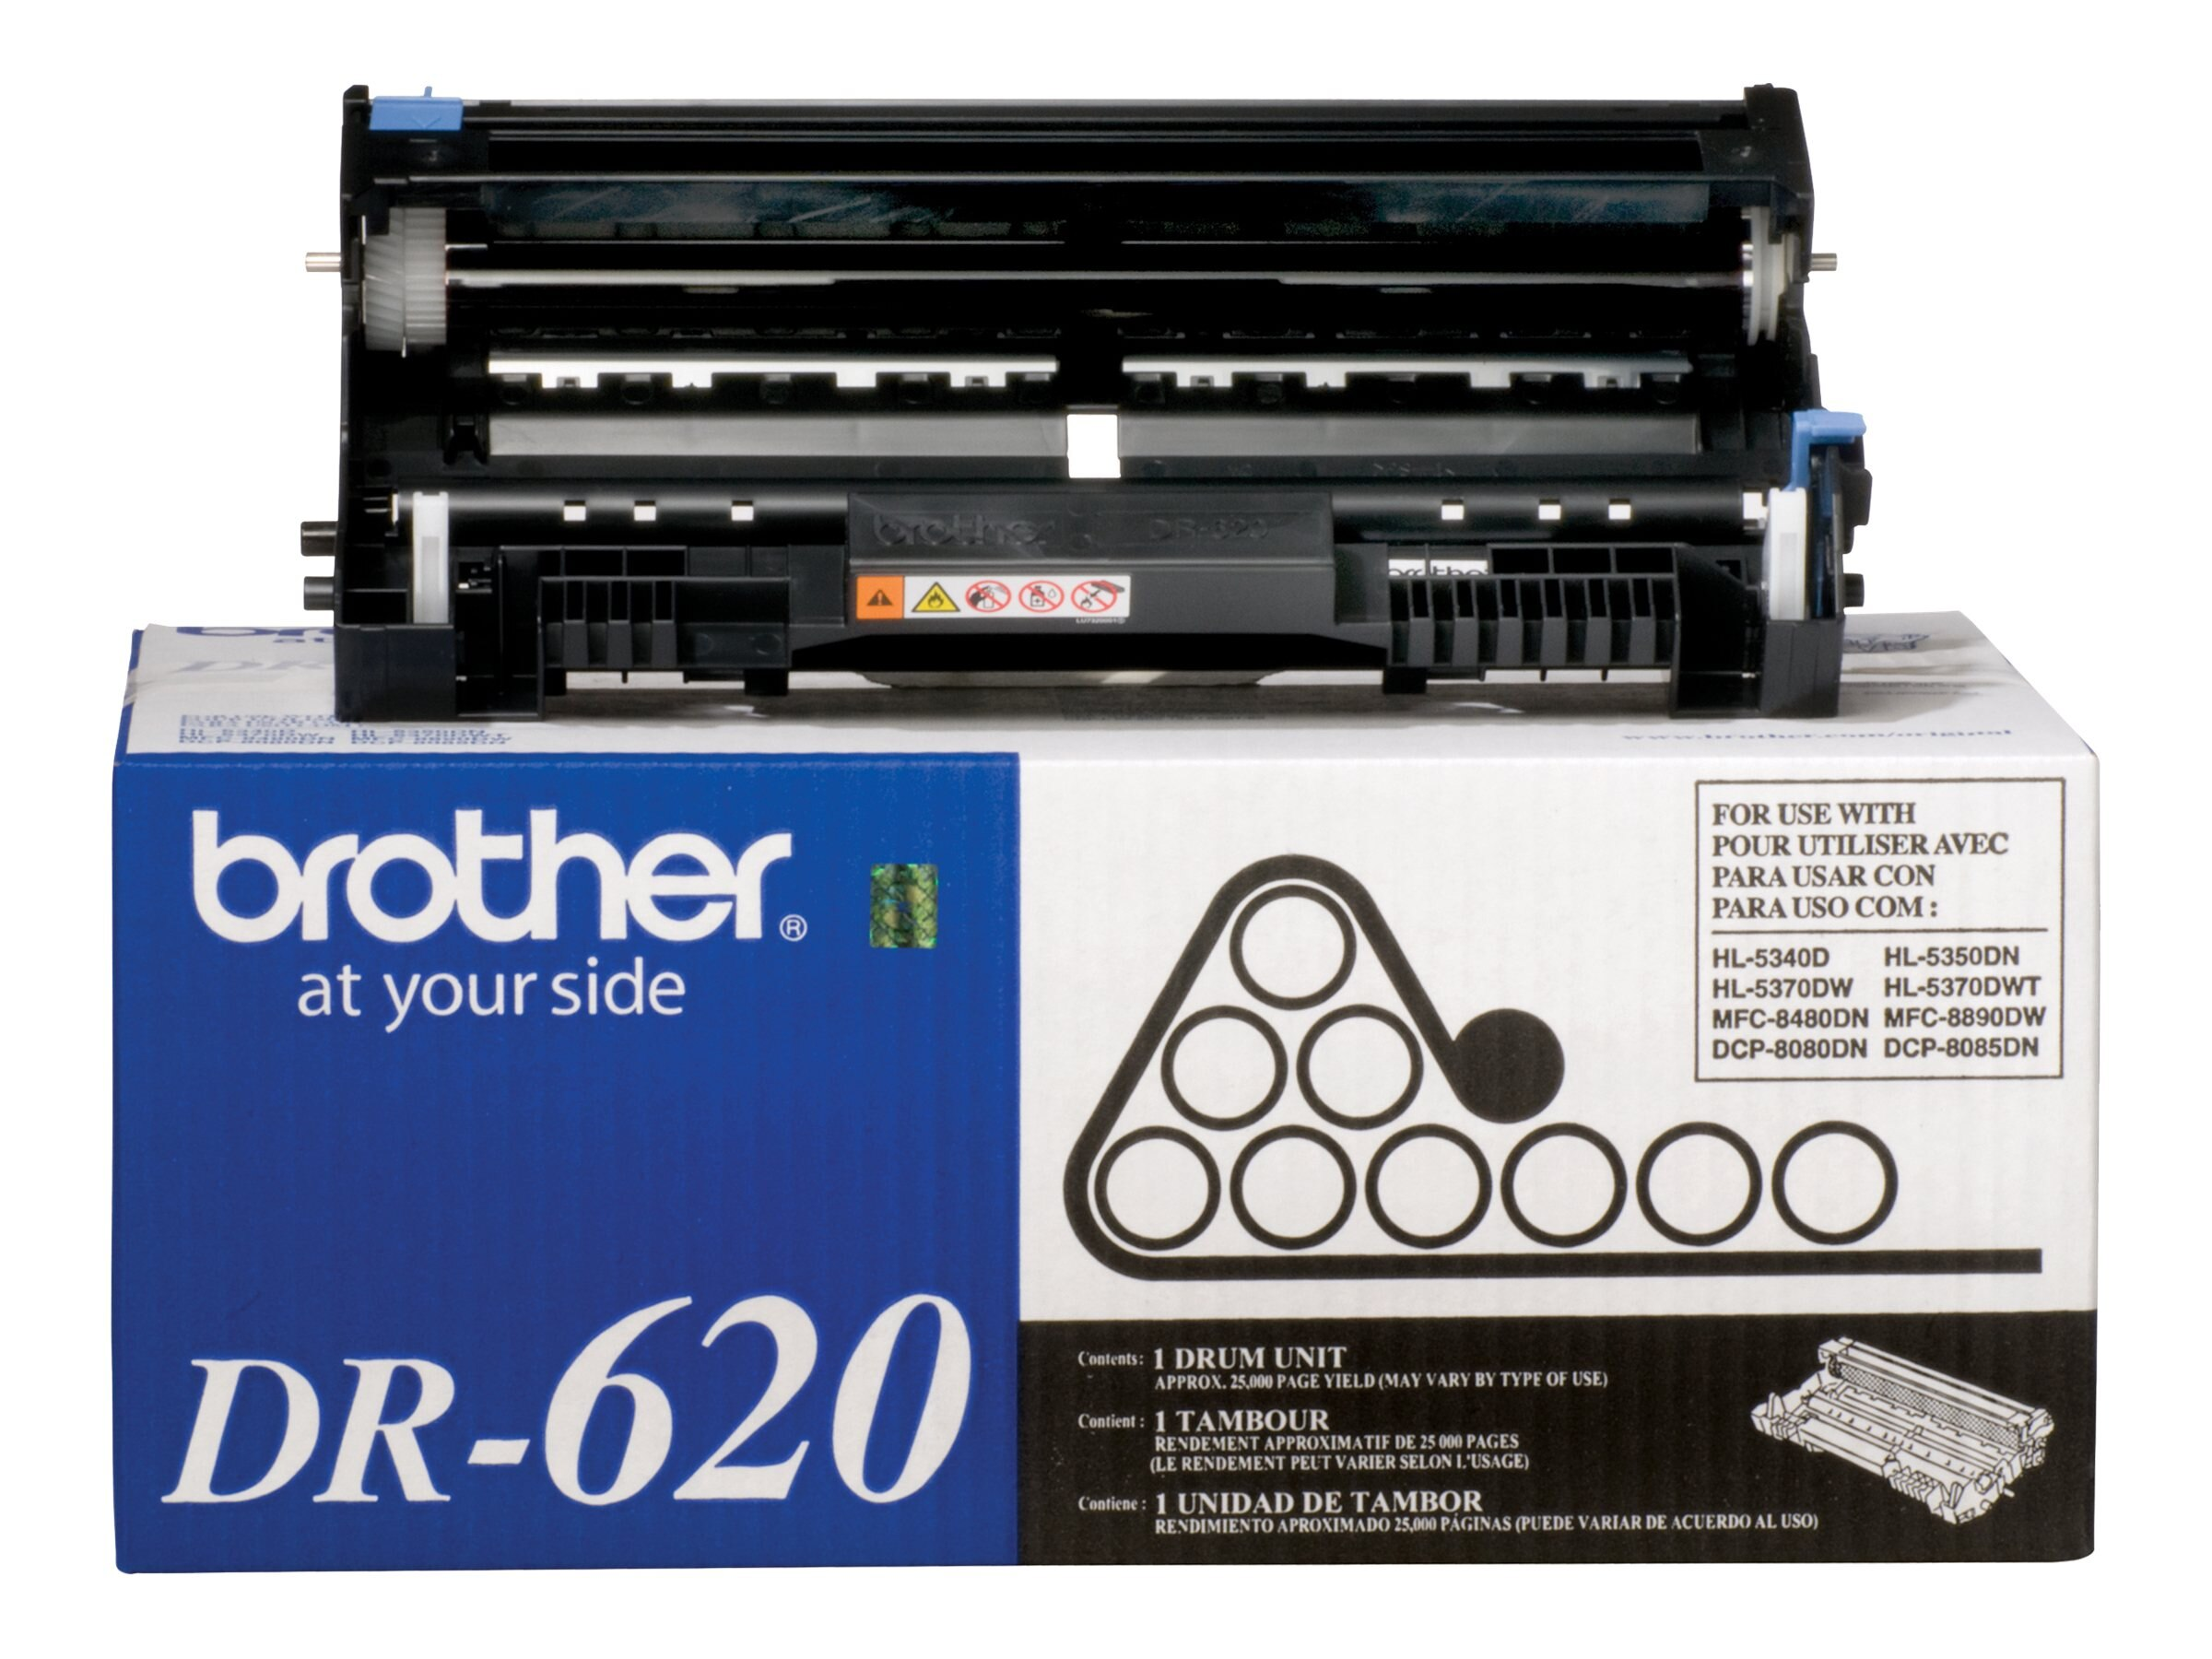 Brother DR620 Drum Unit for DCP-8080DN, DCP-8085DN, HL-5340D, HL-5370DW, HL-5370DWT, MFC-8480DN & MFC-8890DW, DR620, 9532089, Toner and Imaging Components